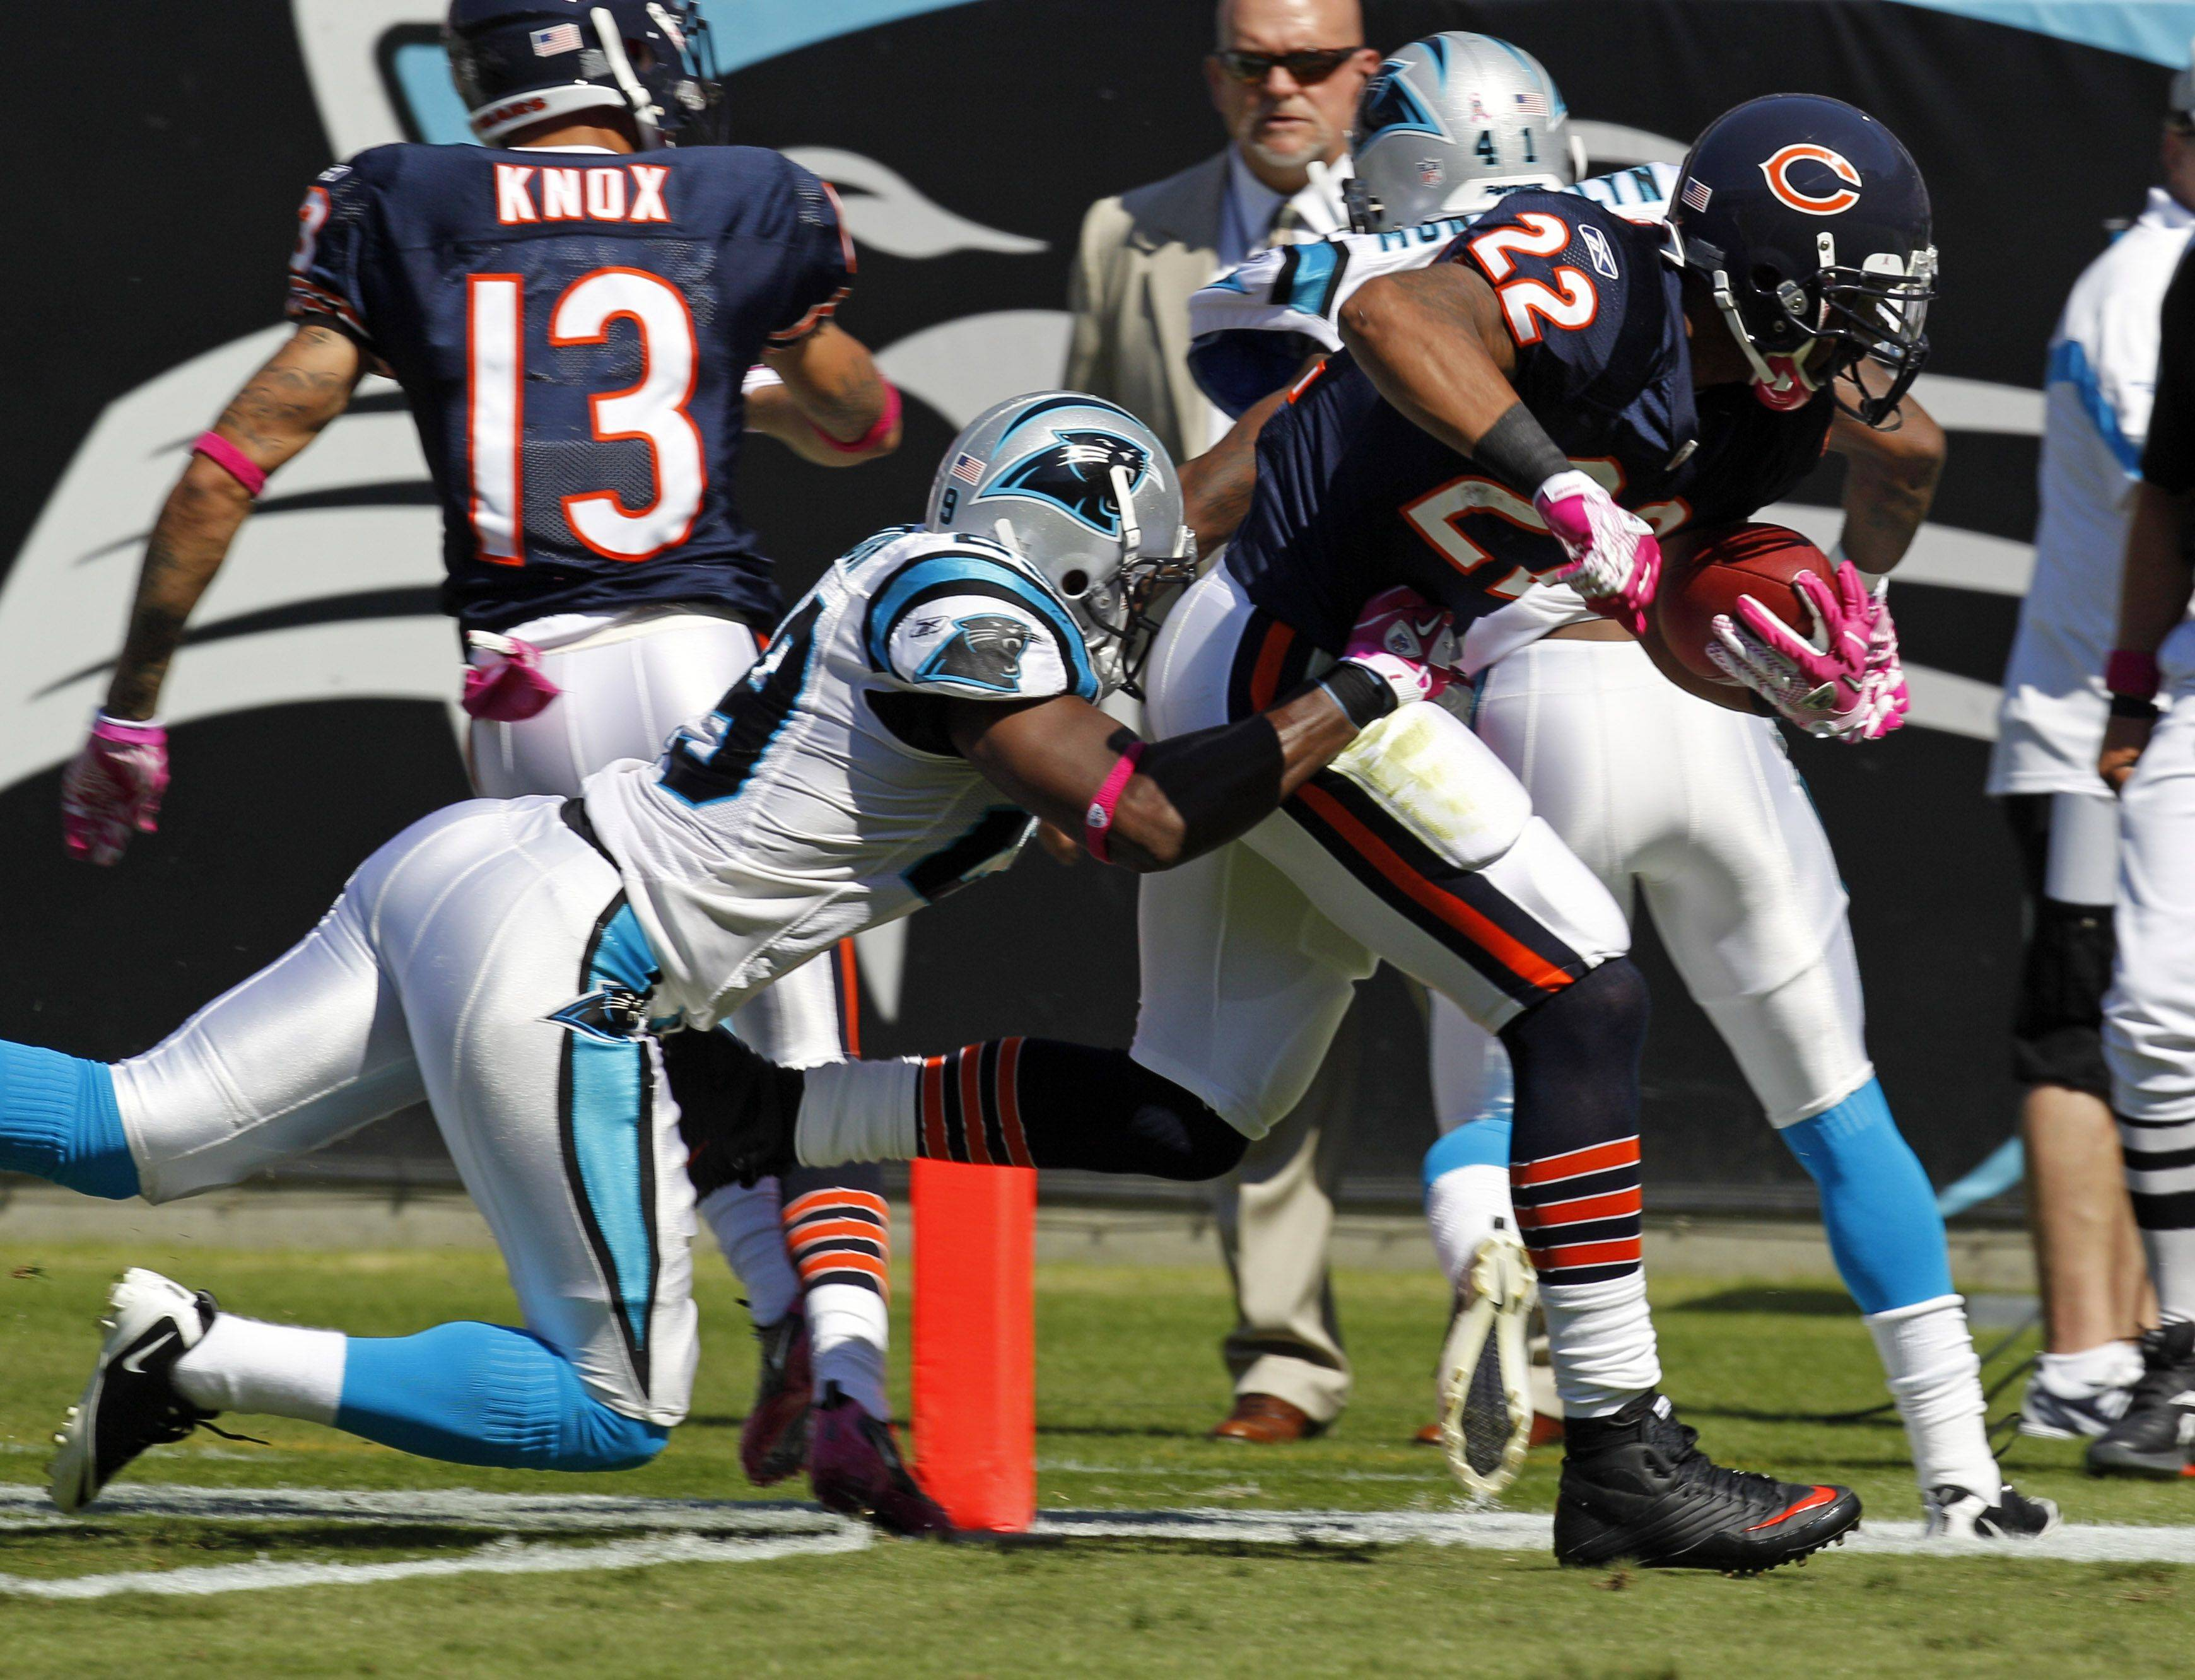 Matt Forte crosses the goal line for a touchdown as Carolina Panthers' Jordan Pugh hangs on.